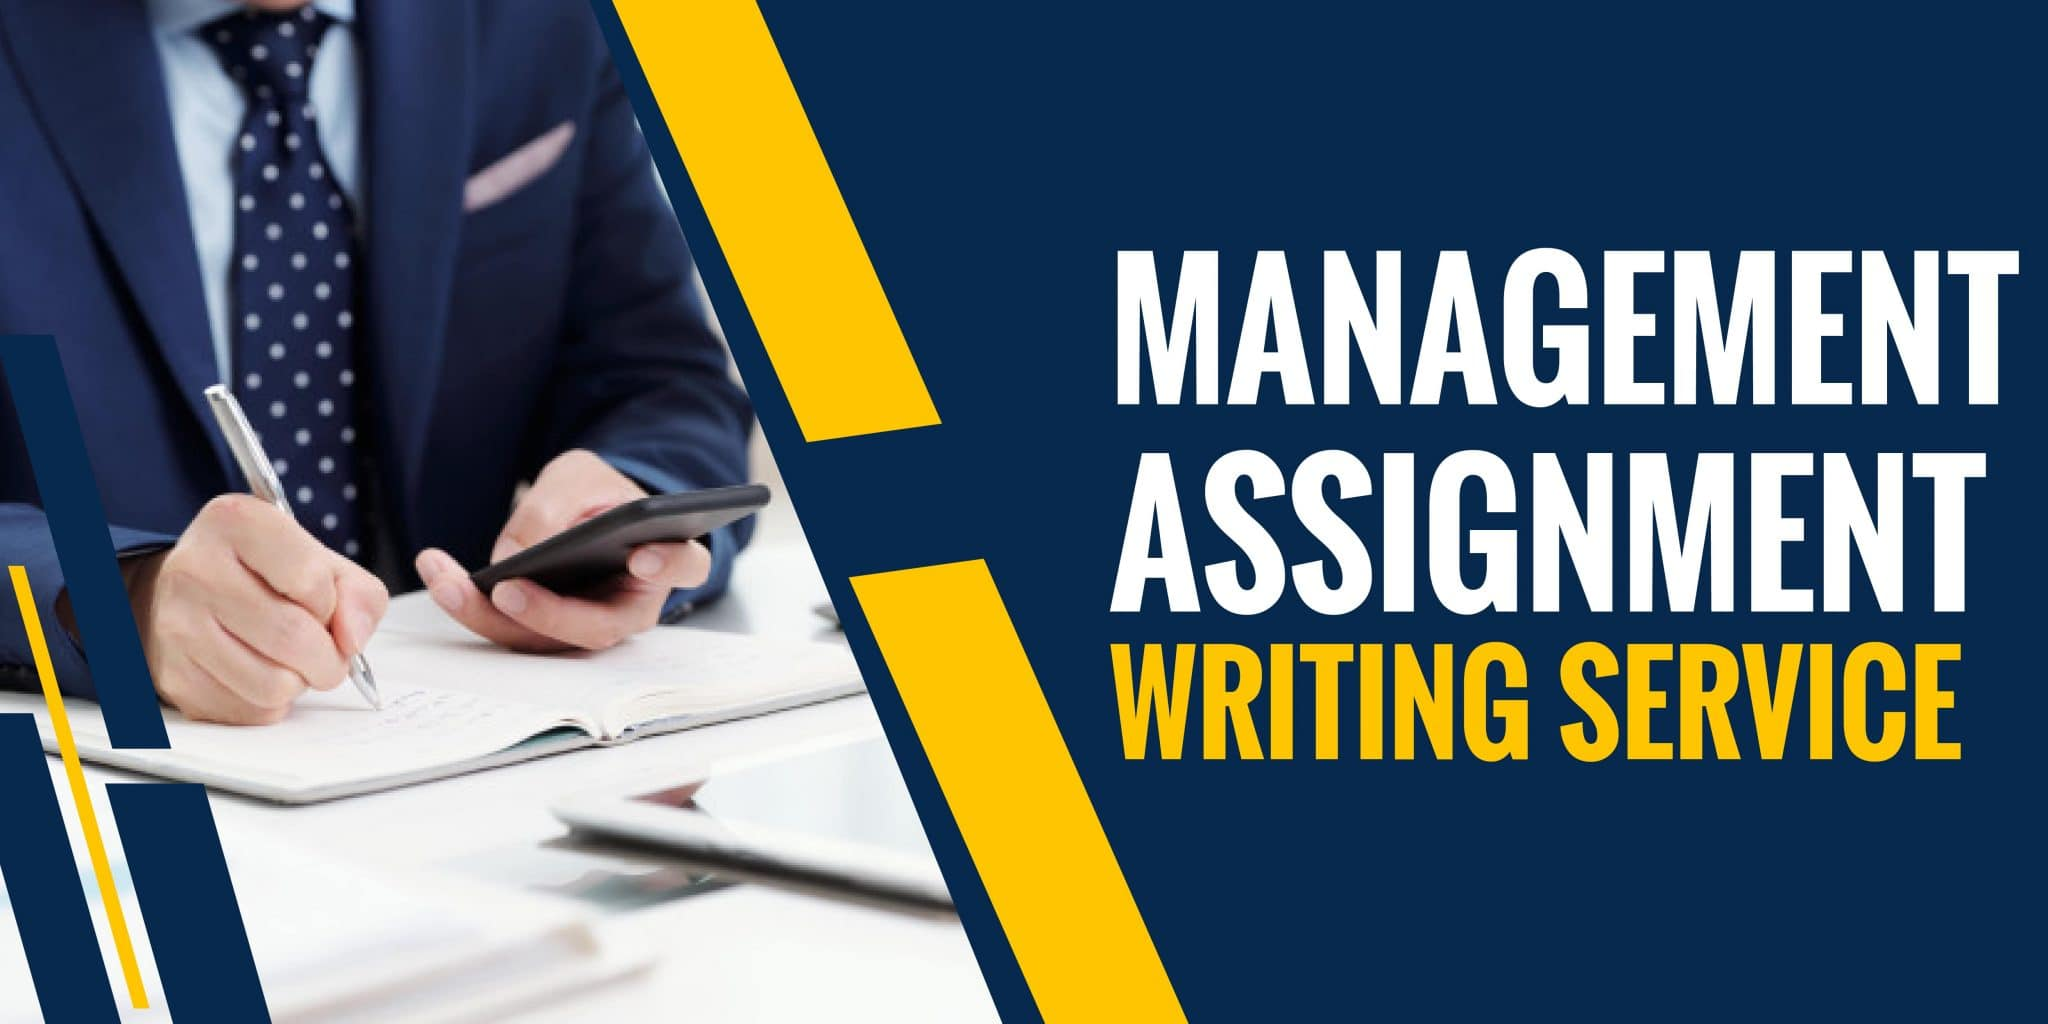 Management Assignment Writing Services